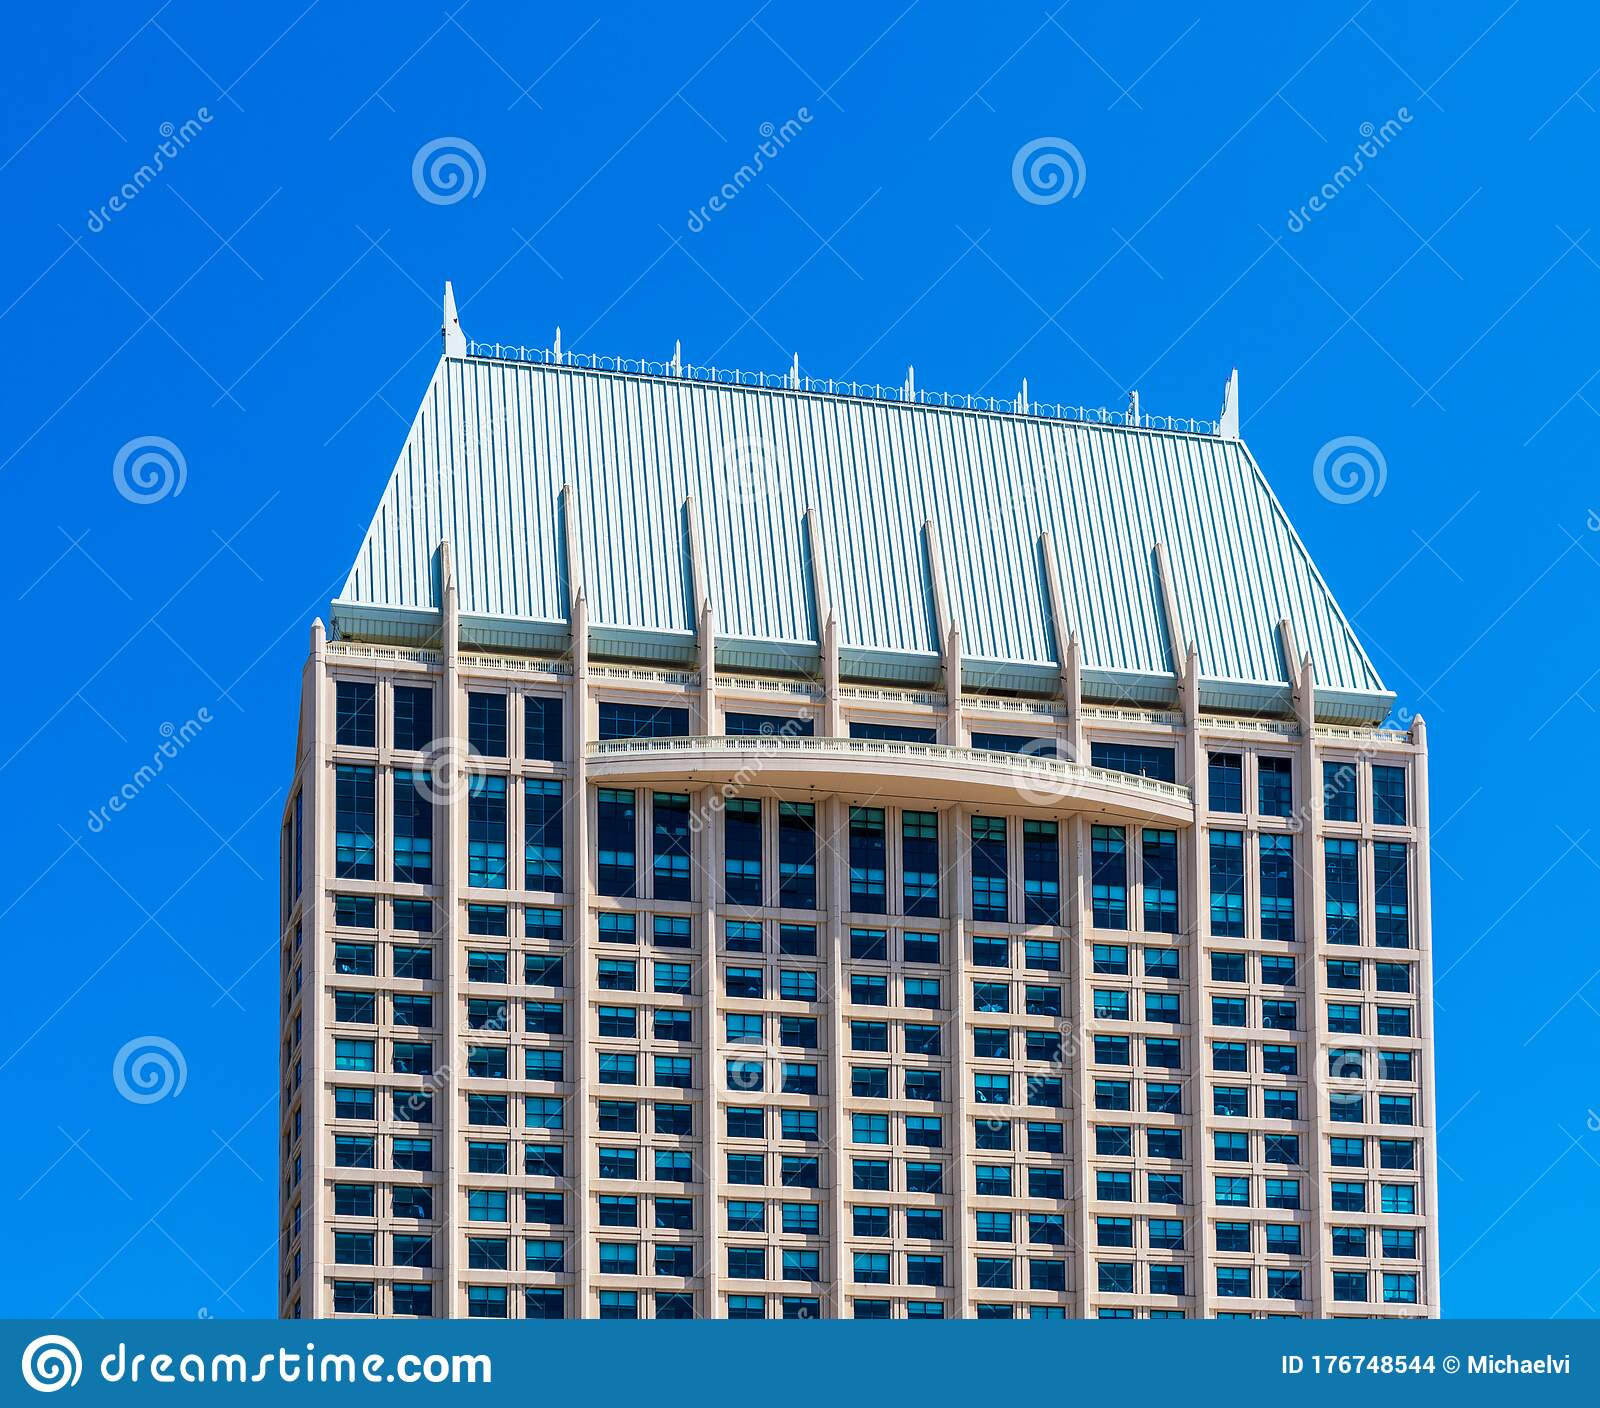 Manchester Grand Hyatt Hotel Is The Ultimate Waterfront Urban Hotel And Tallest Waterfront Building On The West Coast Editorial Stock Image Image Of Diego Hotel 176748544